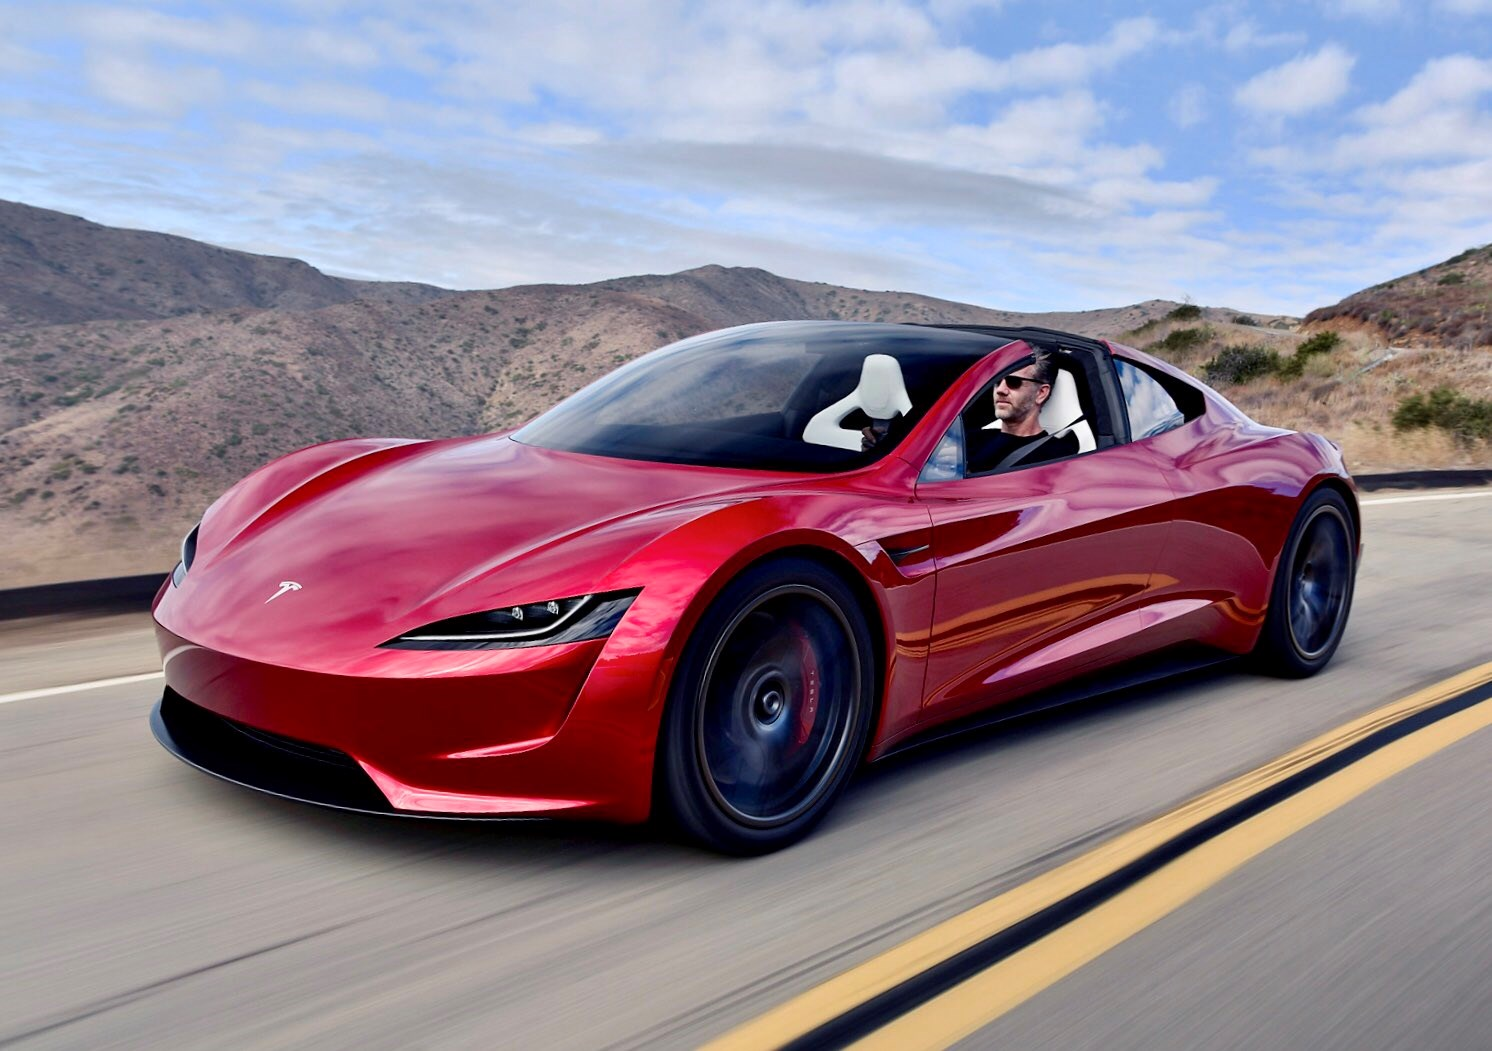 New Tesla Roadster Musk Hints At Rocket Powered Performance